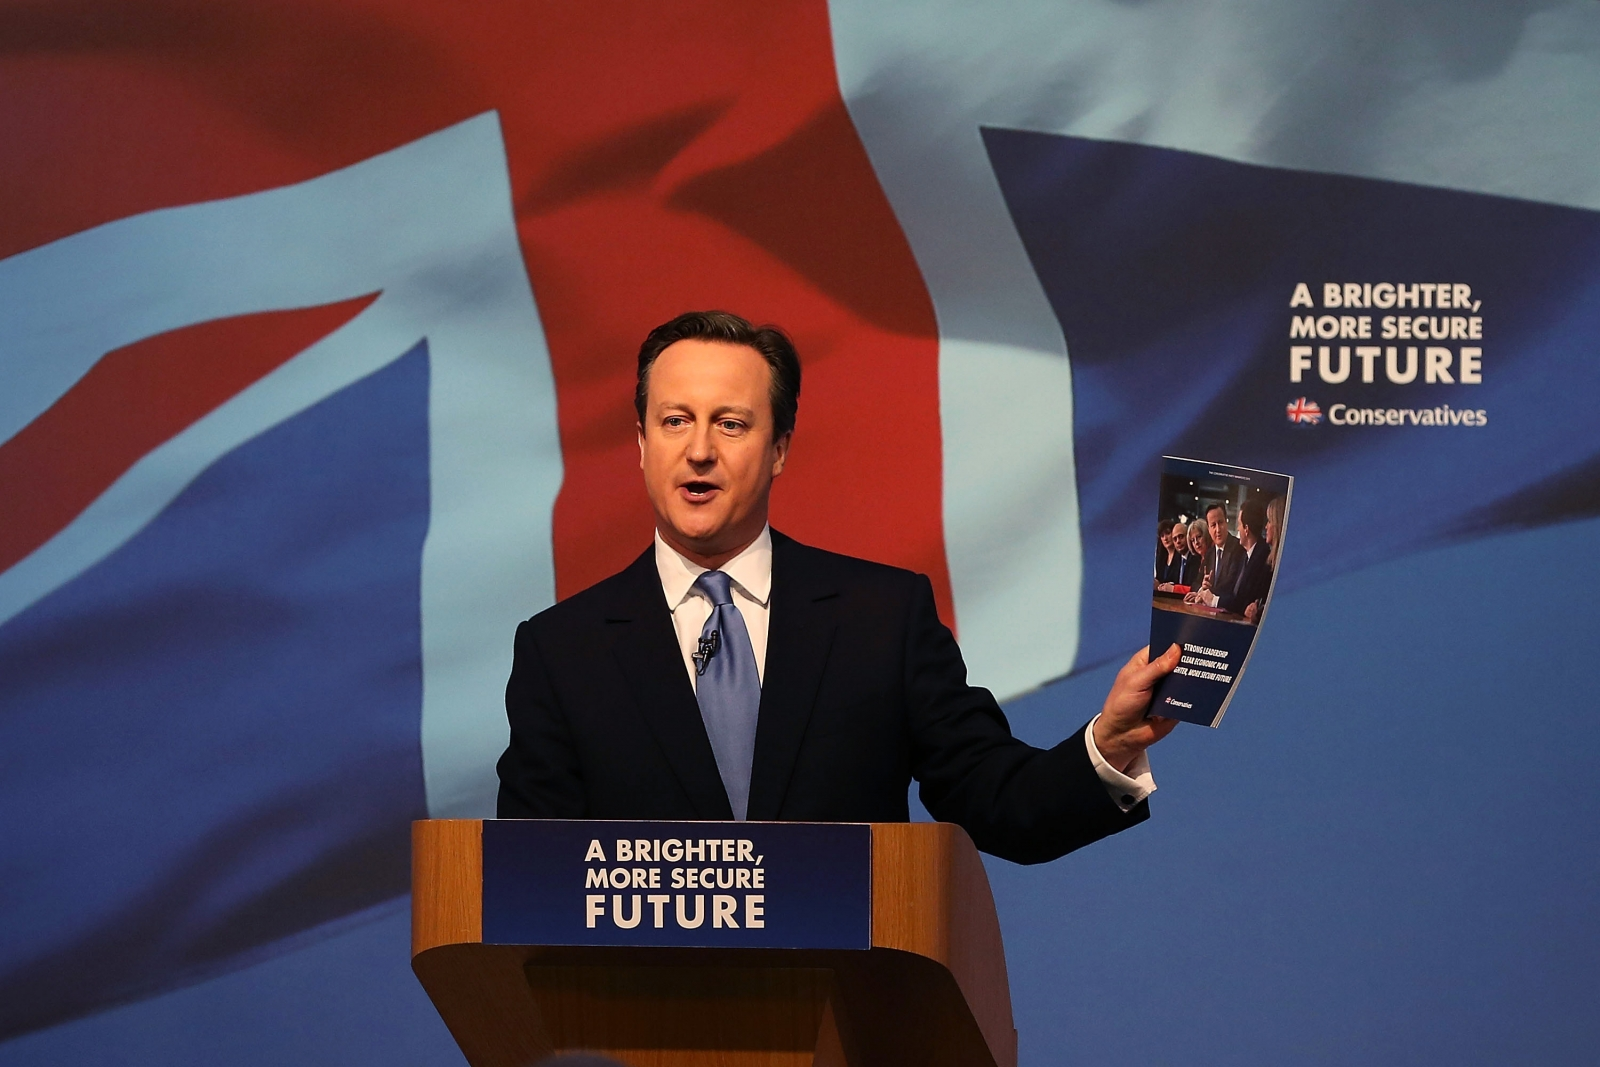 David Cameron with Conservative manifesto